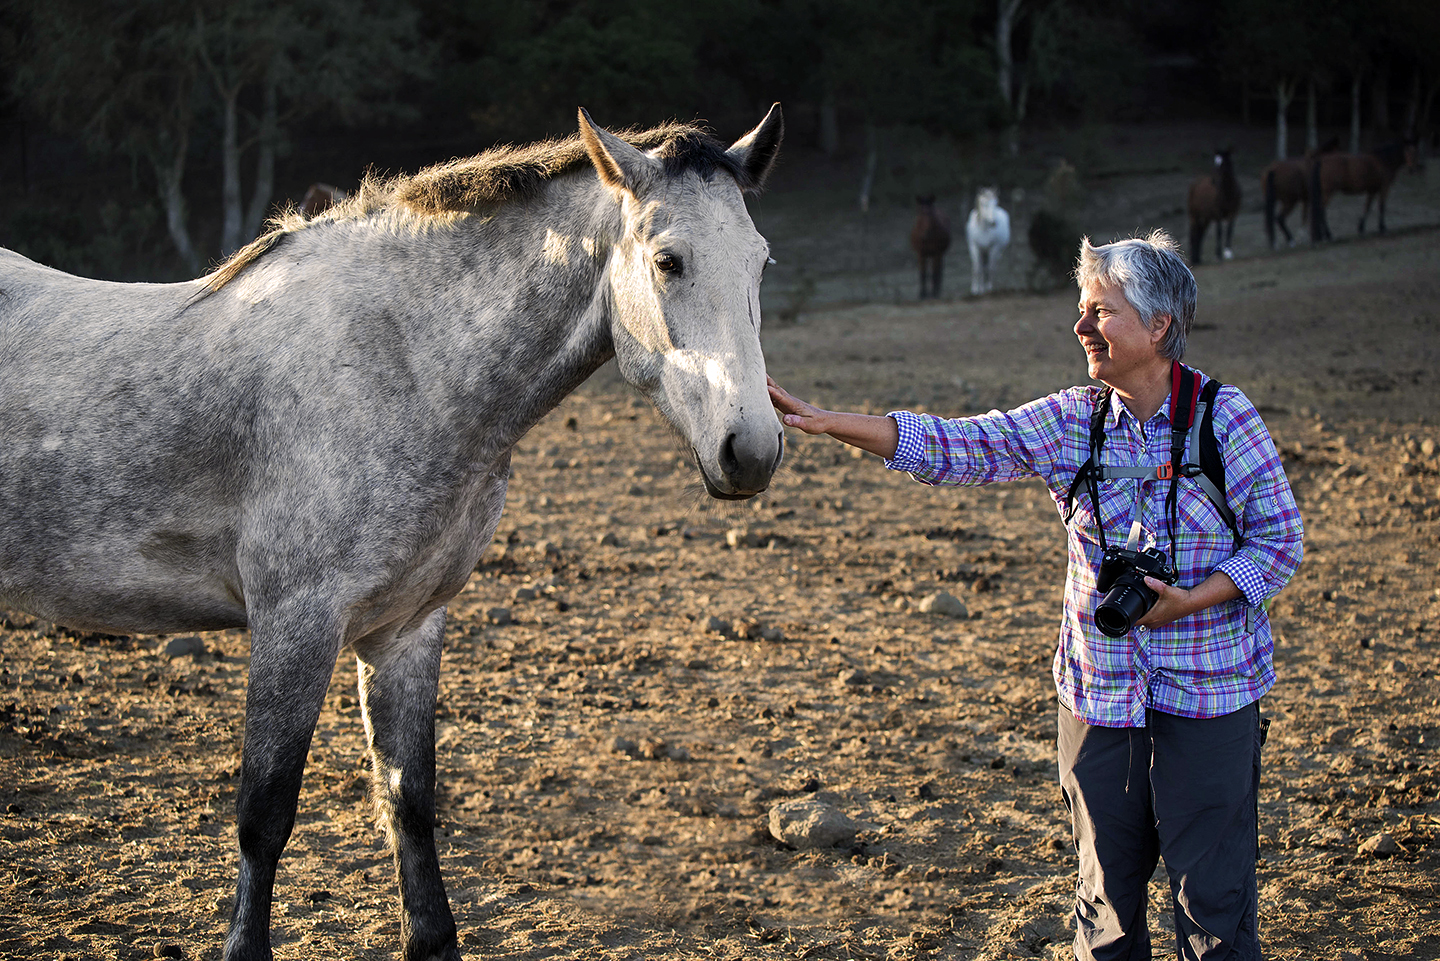 A mare in the Challis wild horse herd at Return to Freedom kept following me. I hoped to touch her but knew not to approach. So I put out my hand and she promptly pushed her nose right on it.  Happy happy!